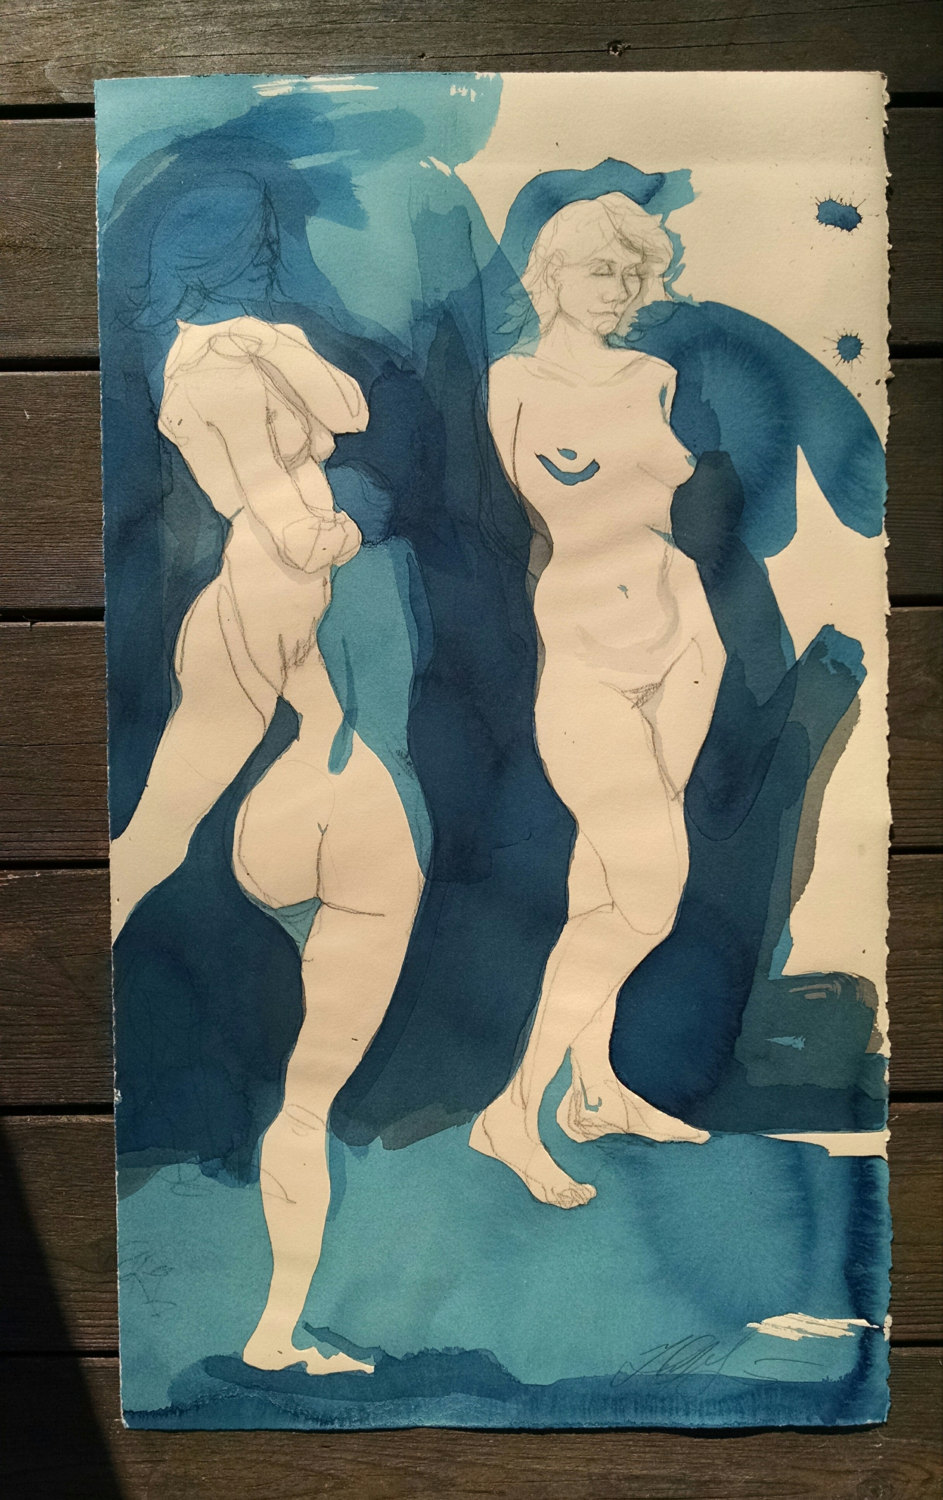 """Maya 3 figures""(w/ blue), Conte crayon, ink, liquid acrylic paint & watercolor on tan paper, 30h"" x 17.5w"", -SOLD"